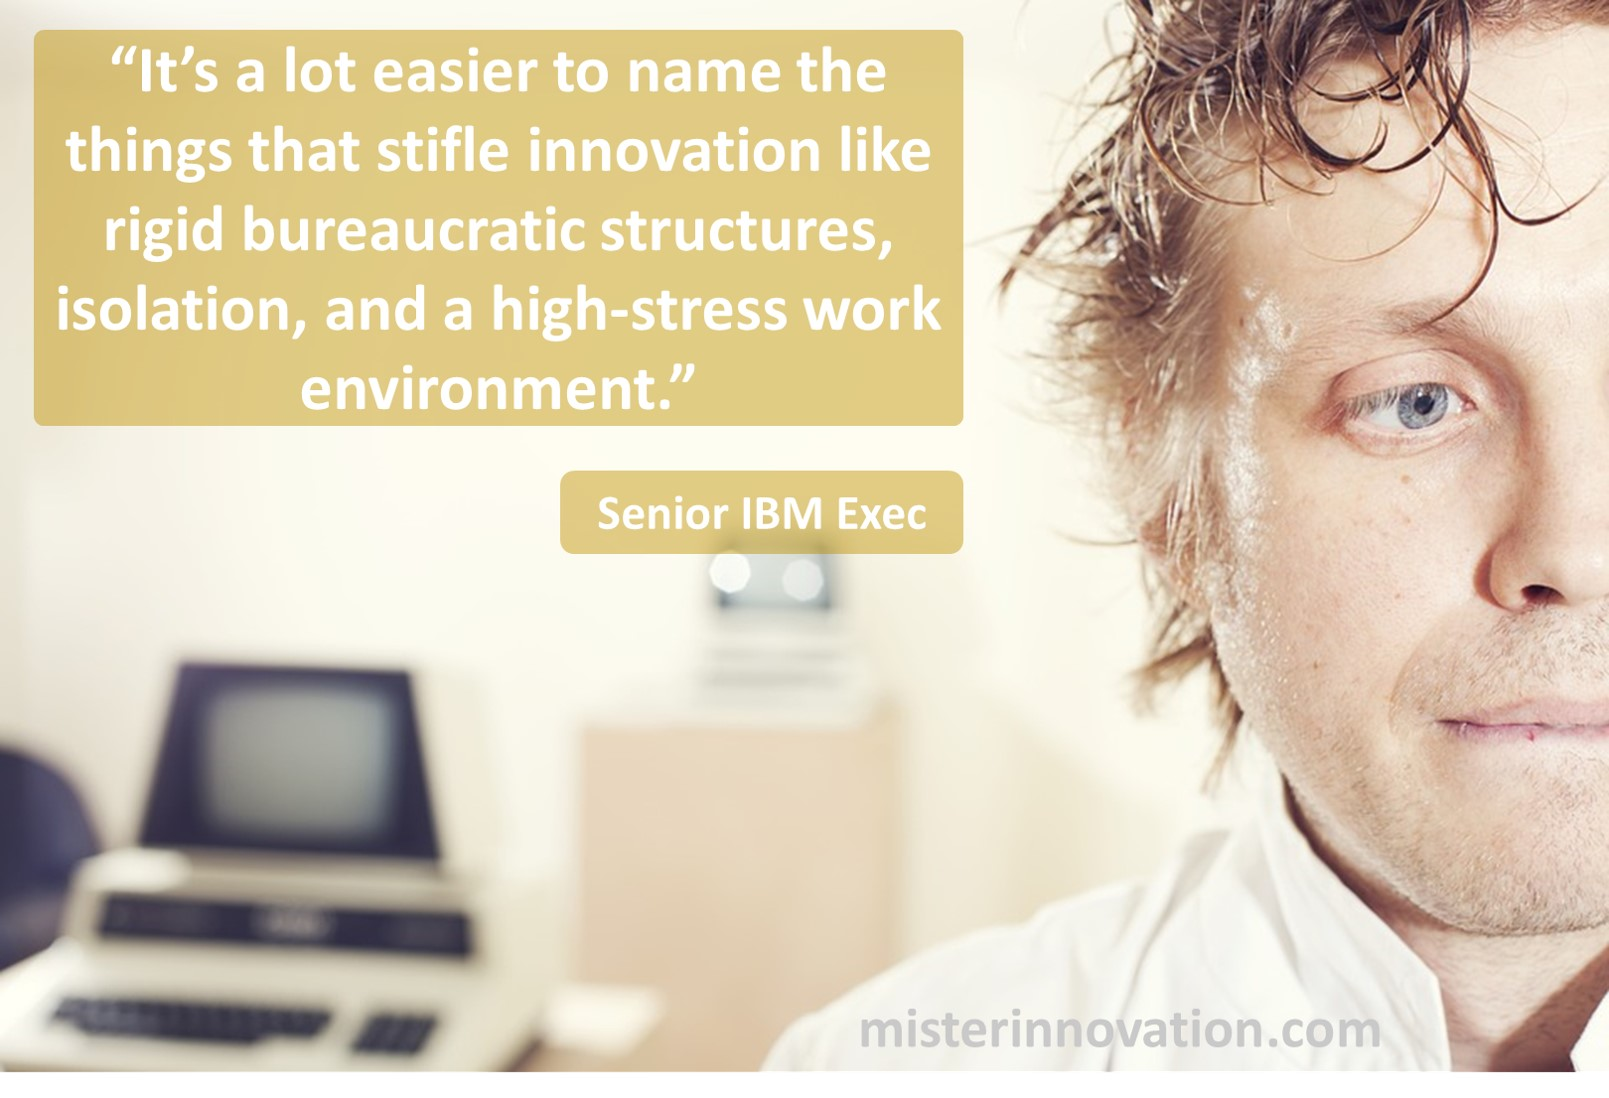 IBM Exec Quote on What Stifles Innovation